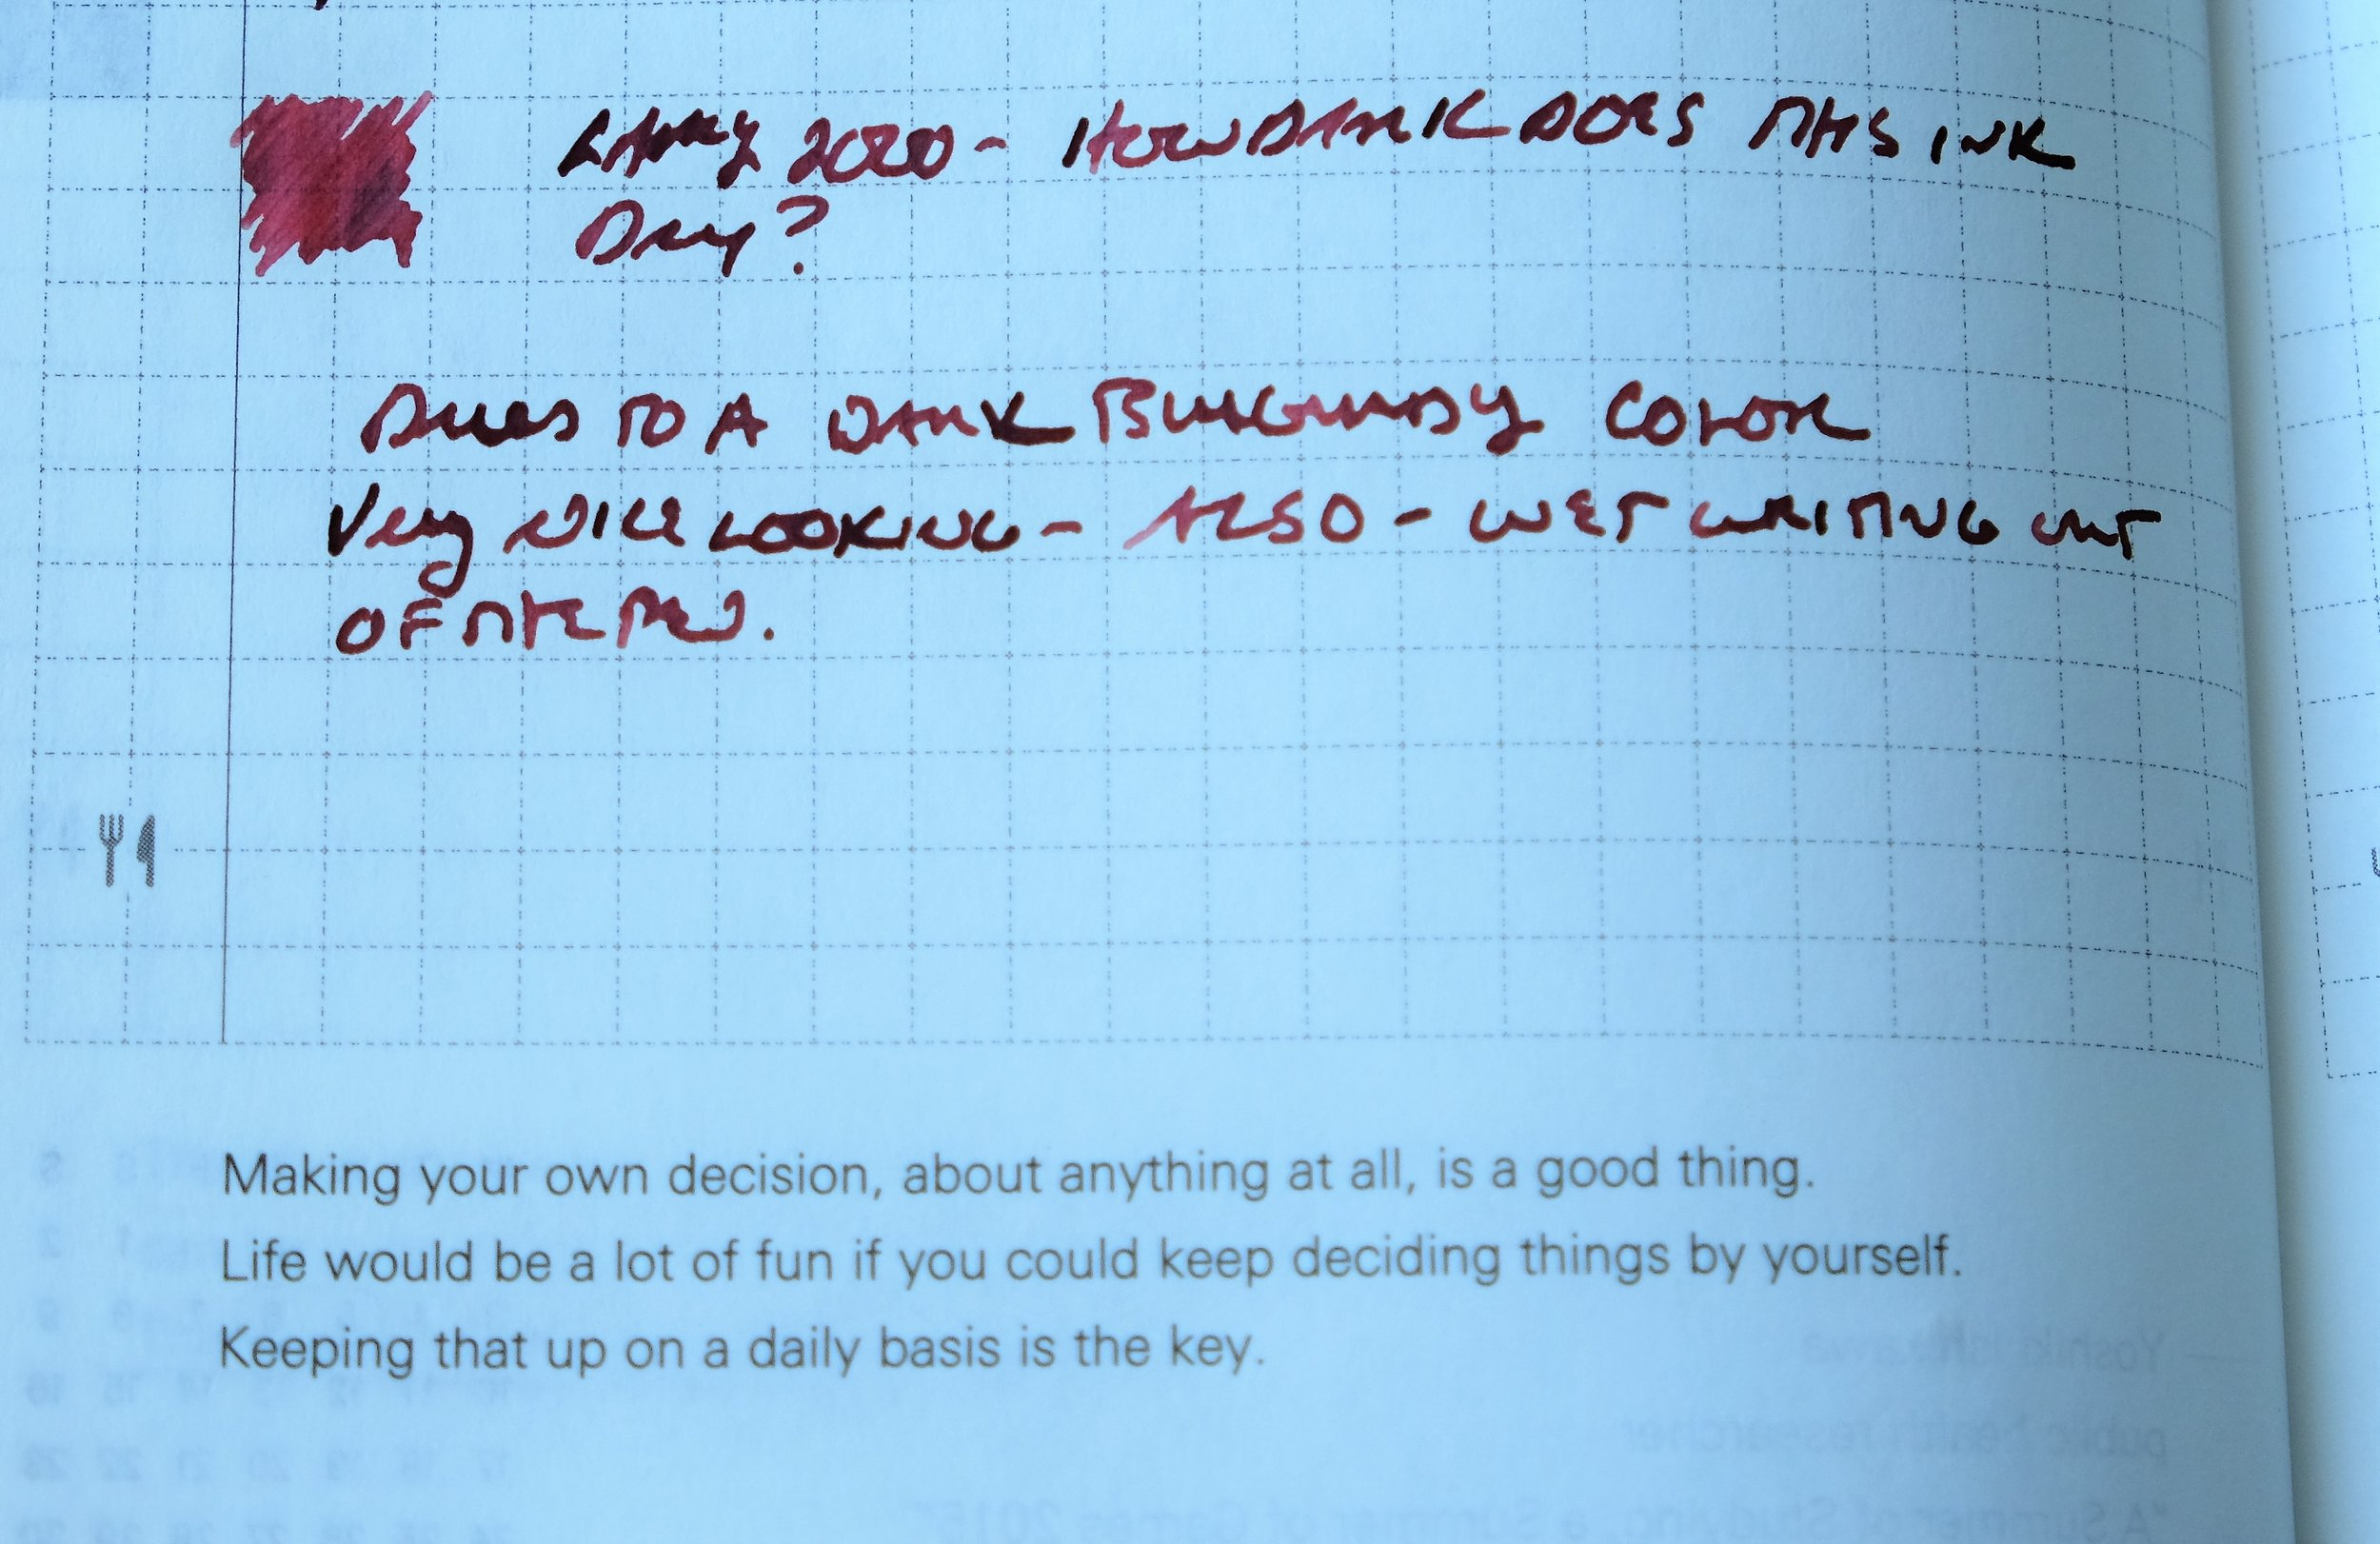 Another writing sample in my Hobonichi Planner.